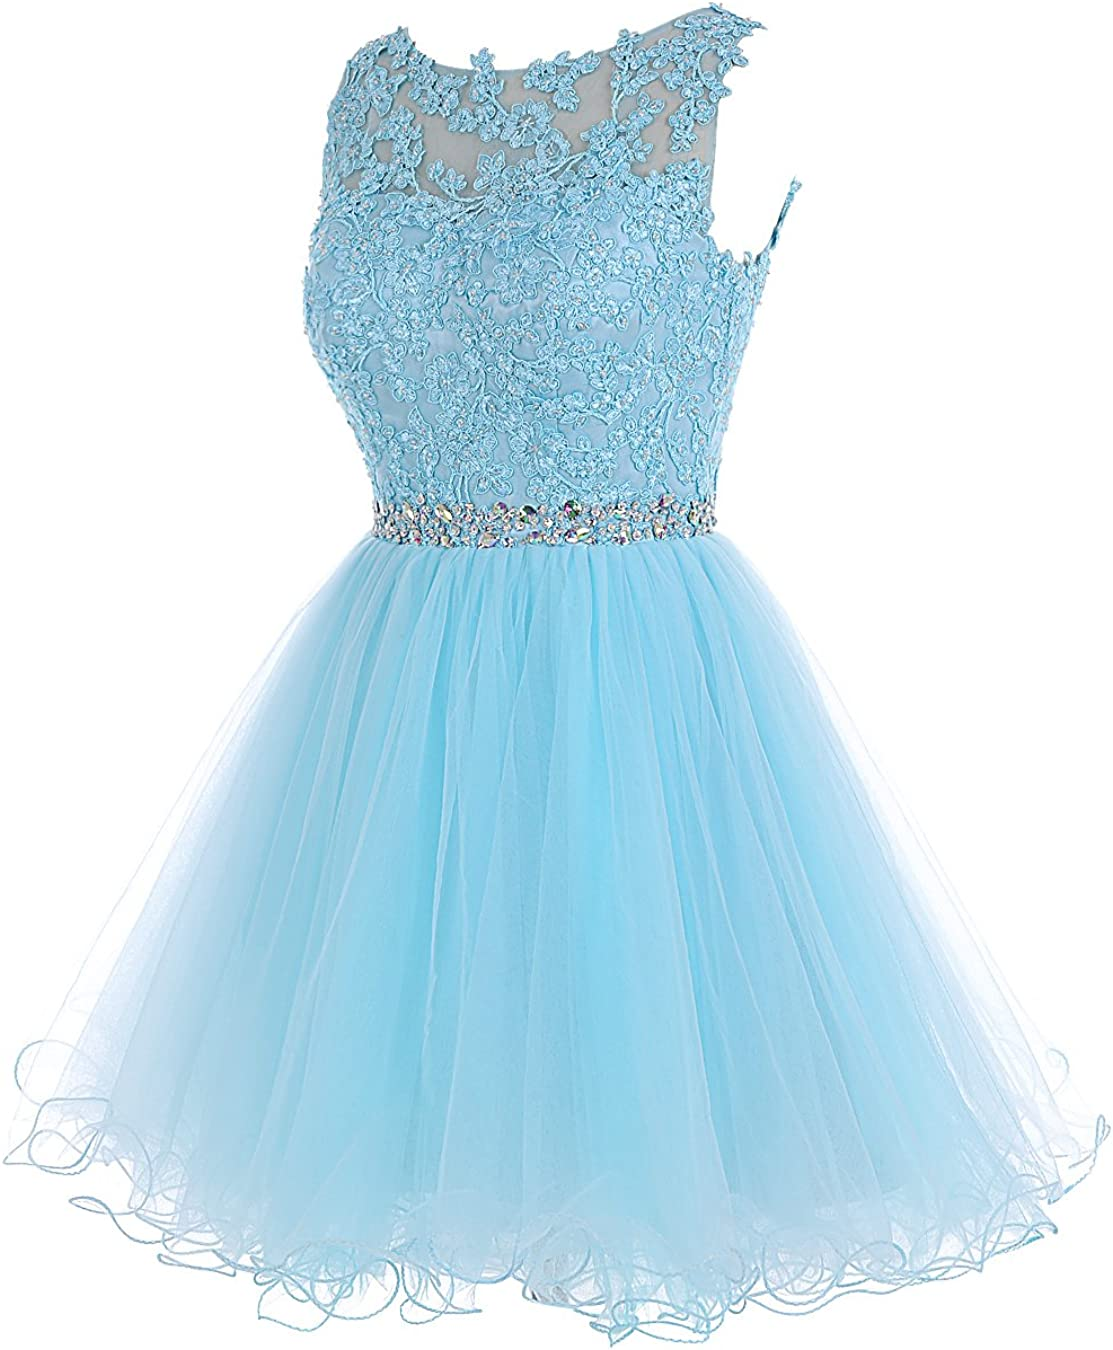 Tideclothes Short Beaded Prom Dress Tulle Applique Homecoming Gowns Tc10198Blackus12